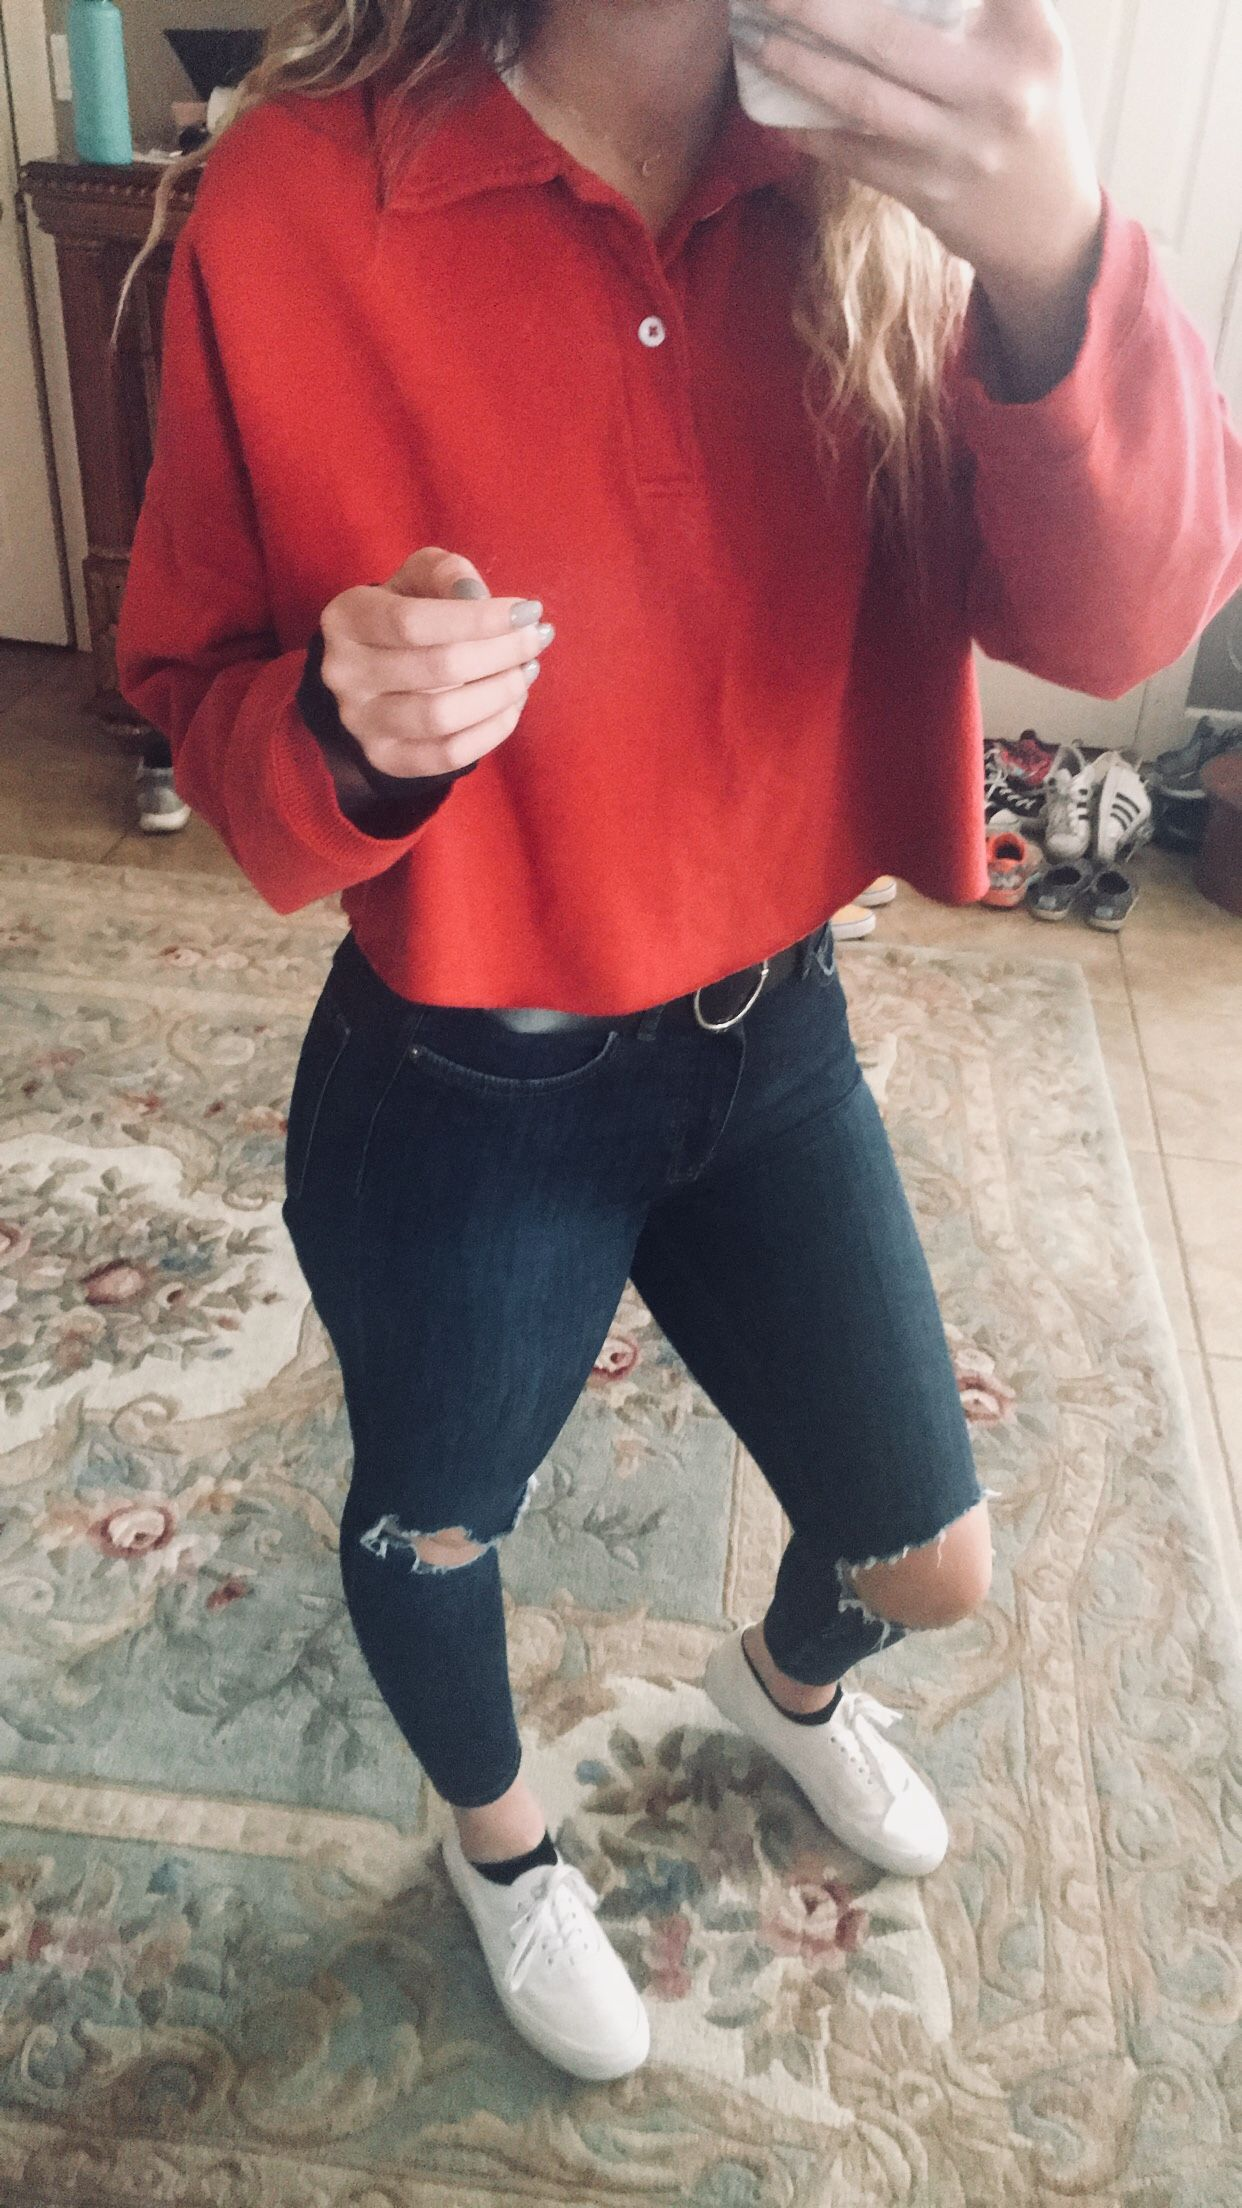 4bd87201d3 Free people ripped knee jeans -red cropped polo brandy Melville top ...